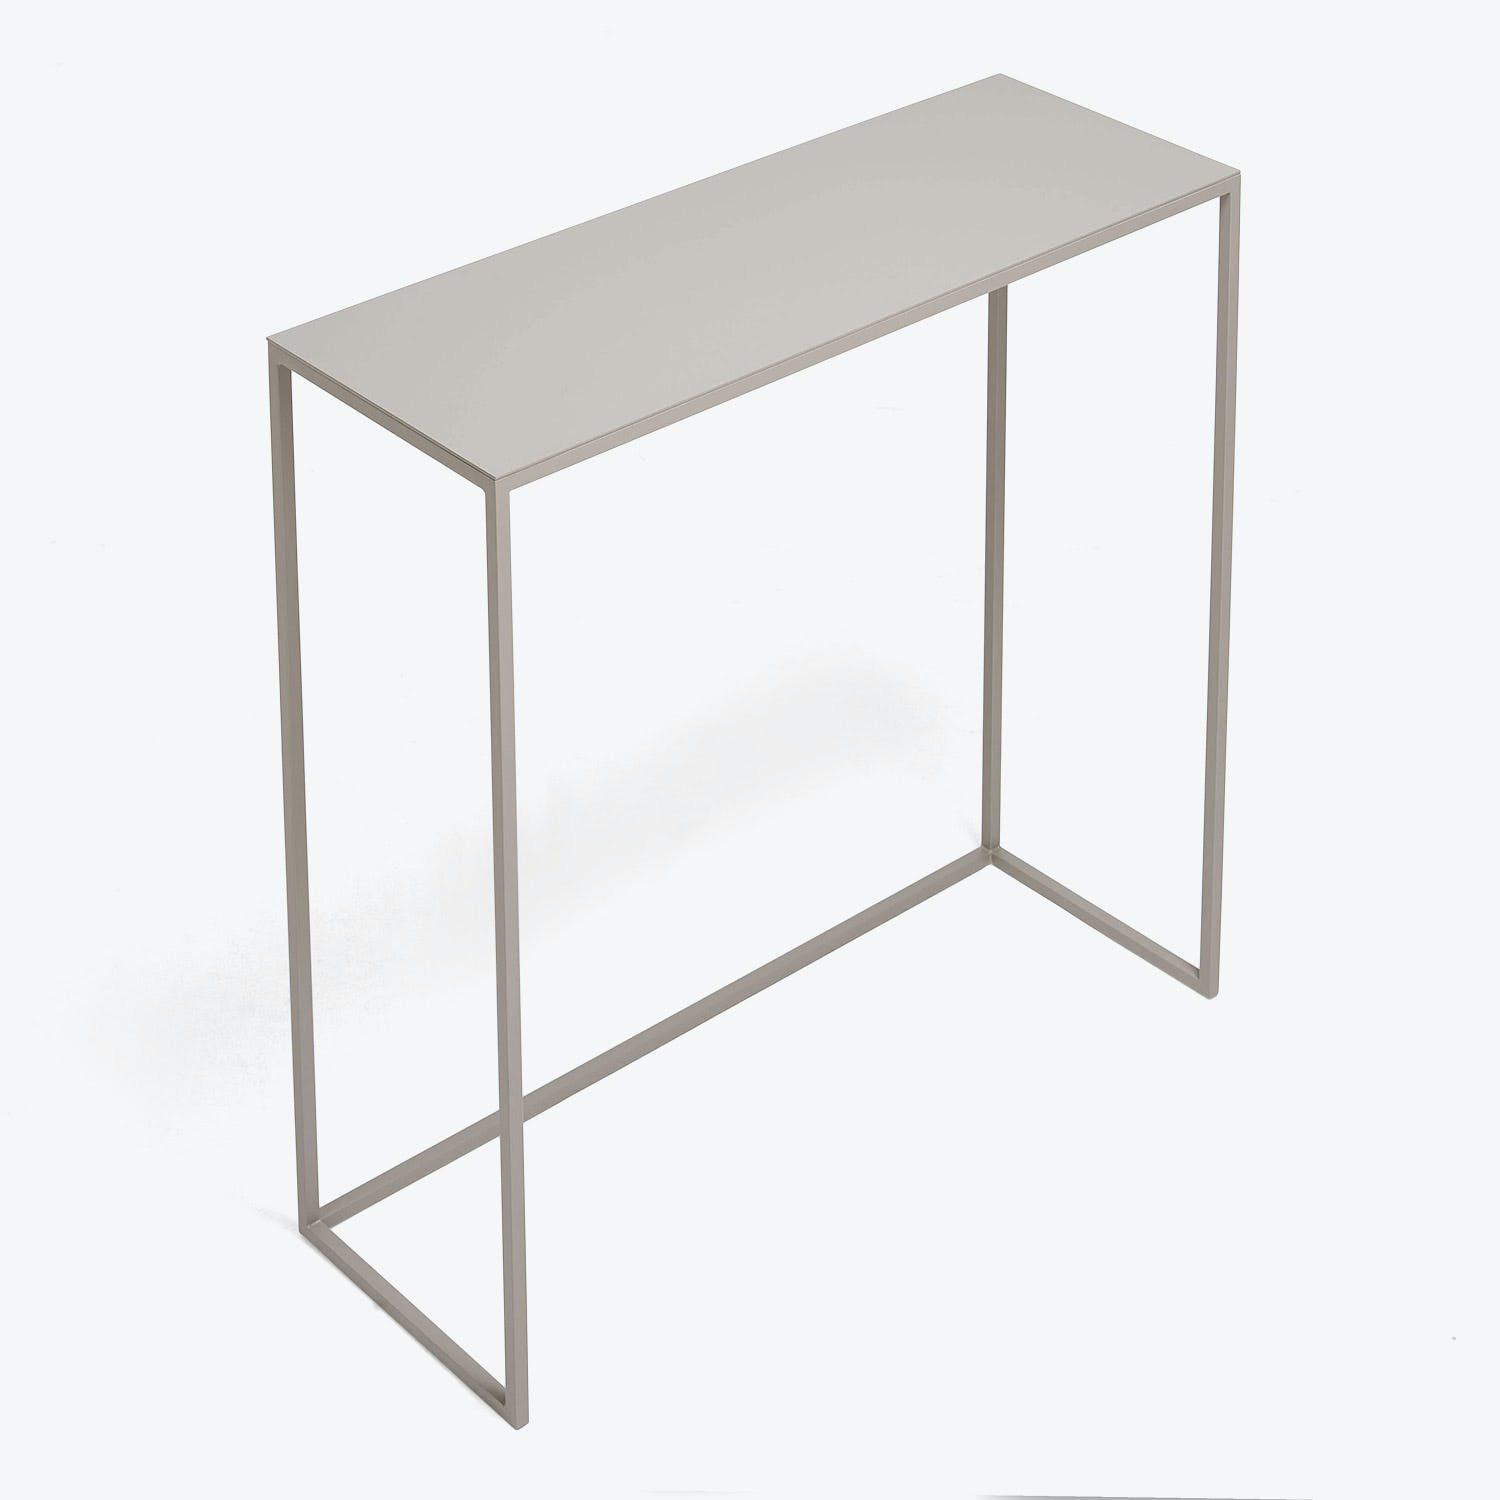 Product Image - Gallerist Medium Console Storm Gray